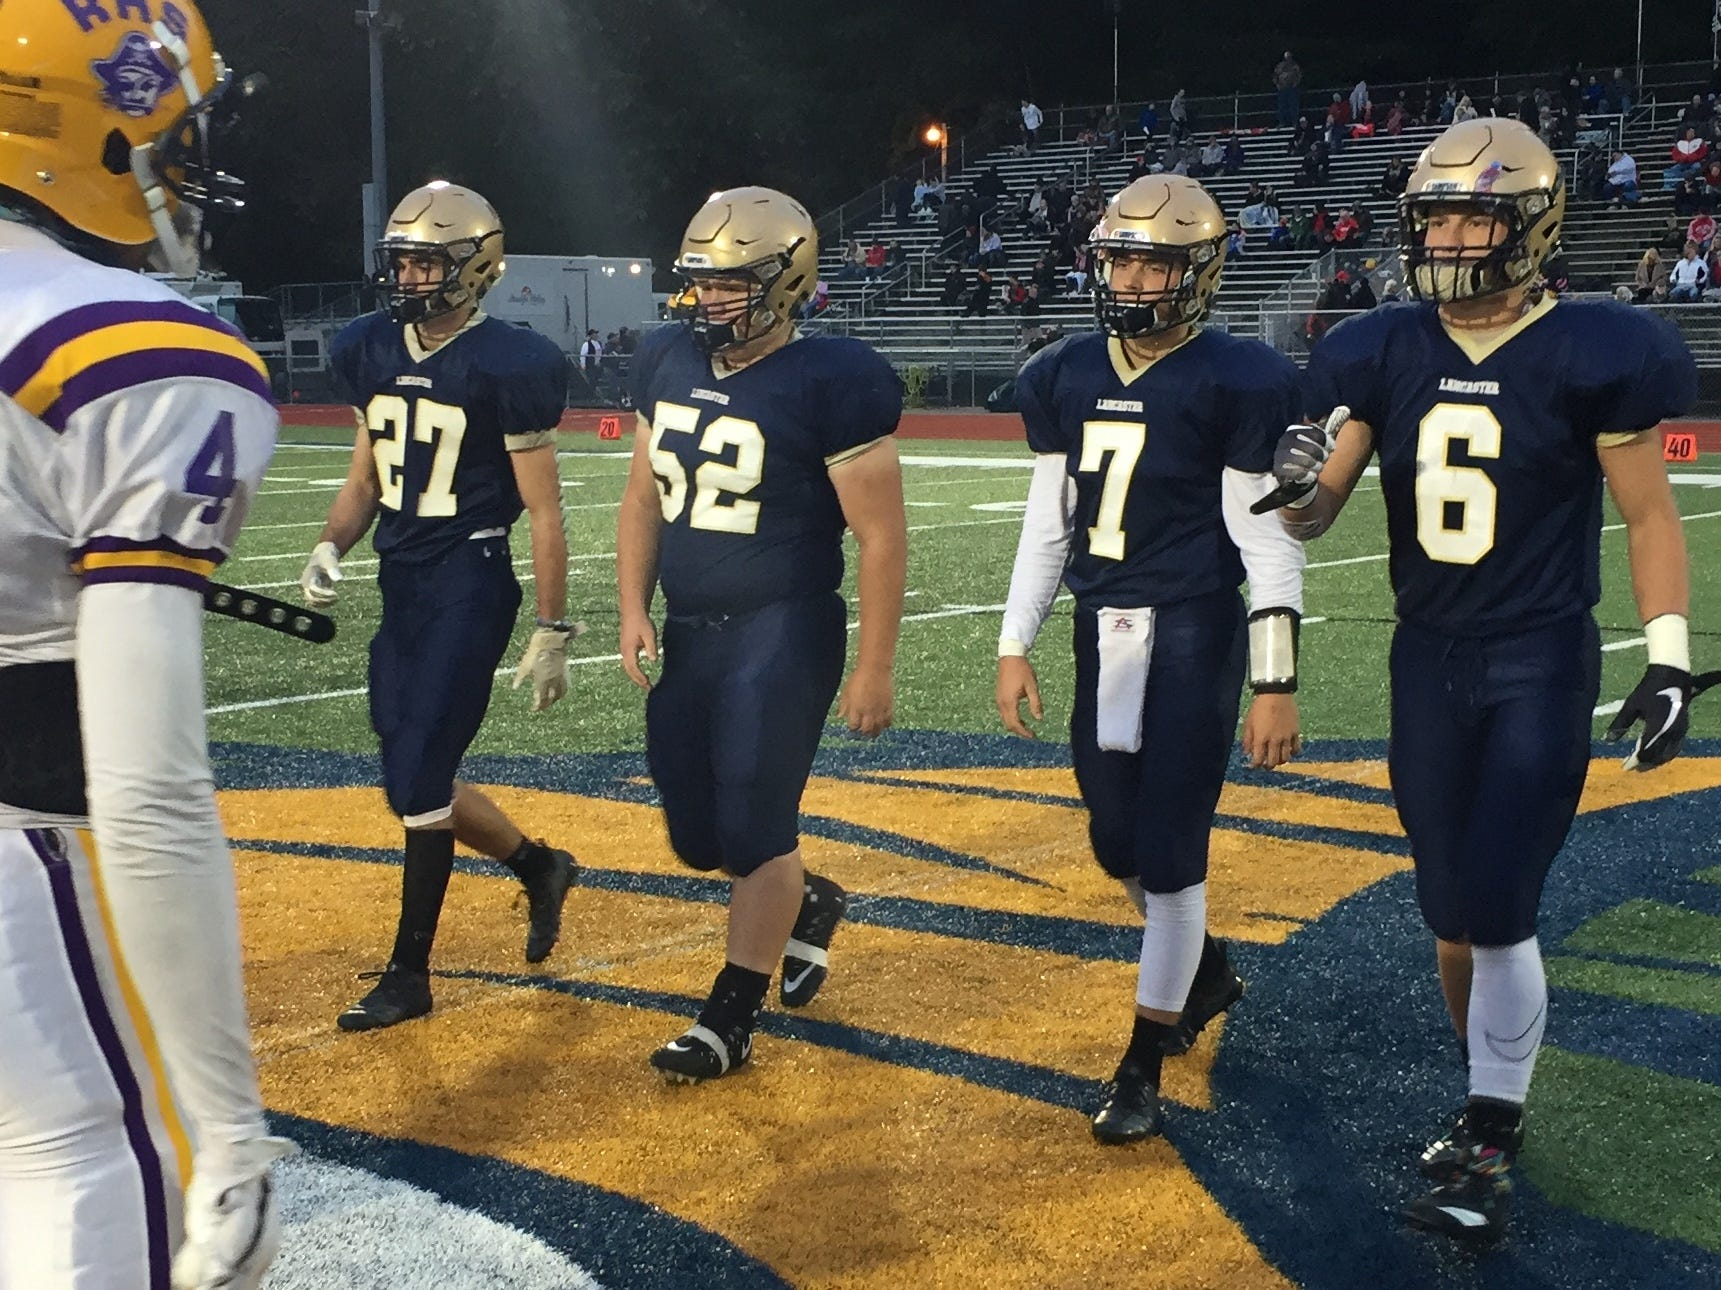 Lancaster senior offensive lineman Vince Albertini served as one of four captains, along with A.J. Cook, Tyler Monk and Jake Richards.